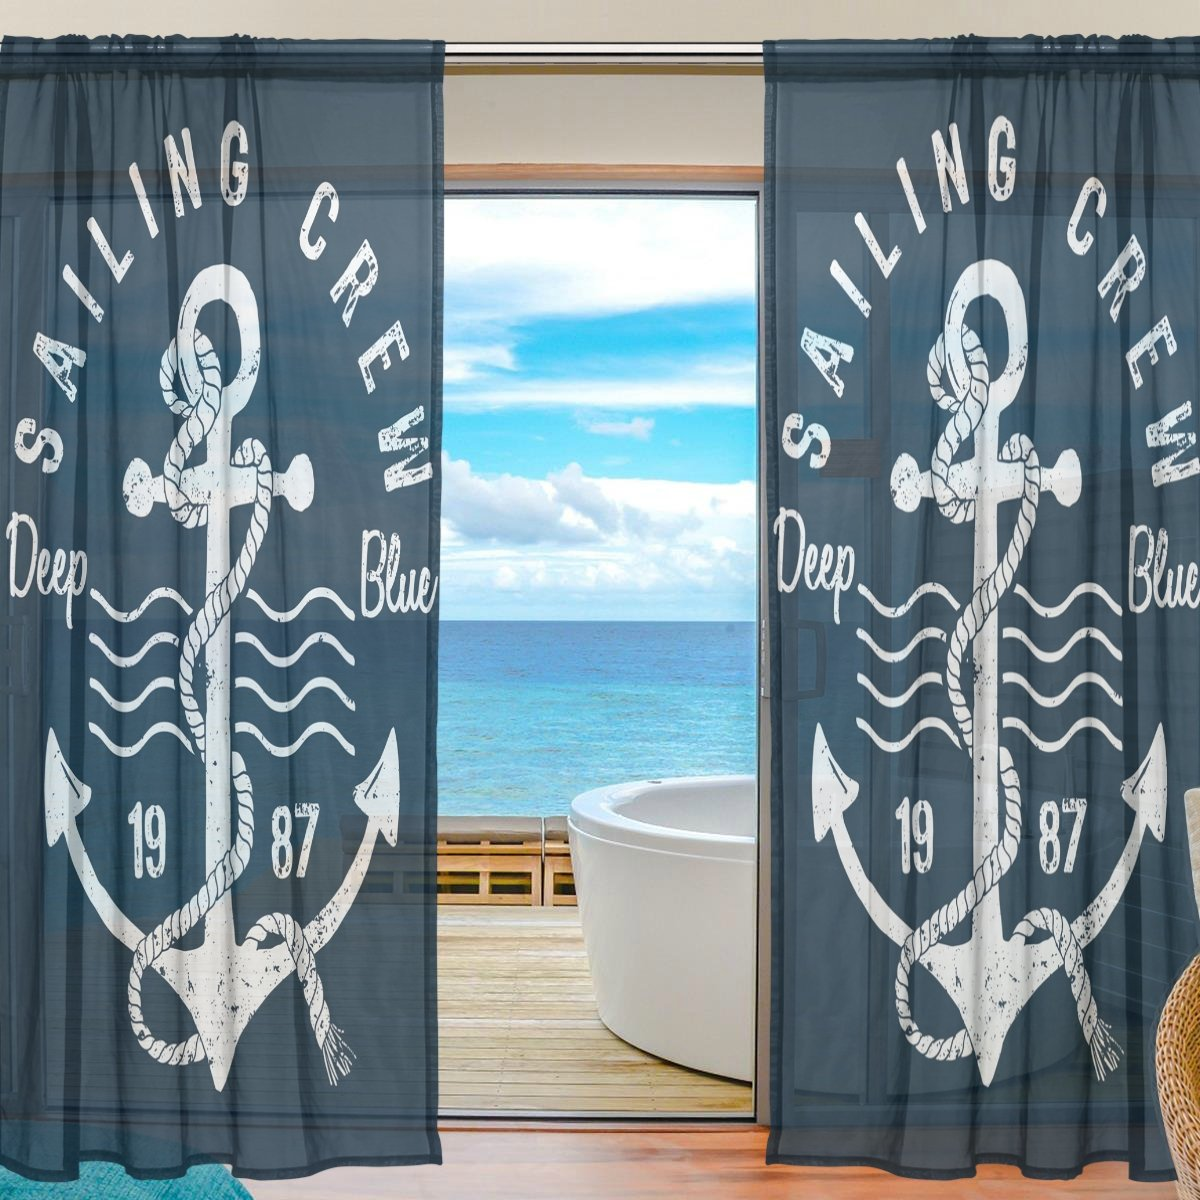 SEULIFE Window Sheer Curtain, Ocean Sea Nautical Anchor Navy Blue Voile Curtain Drapes for Door Kitchen Living Room Bedroom 55x78 inches 2 Panels g3281542p111c125s165